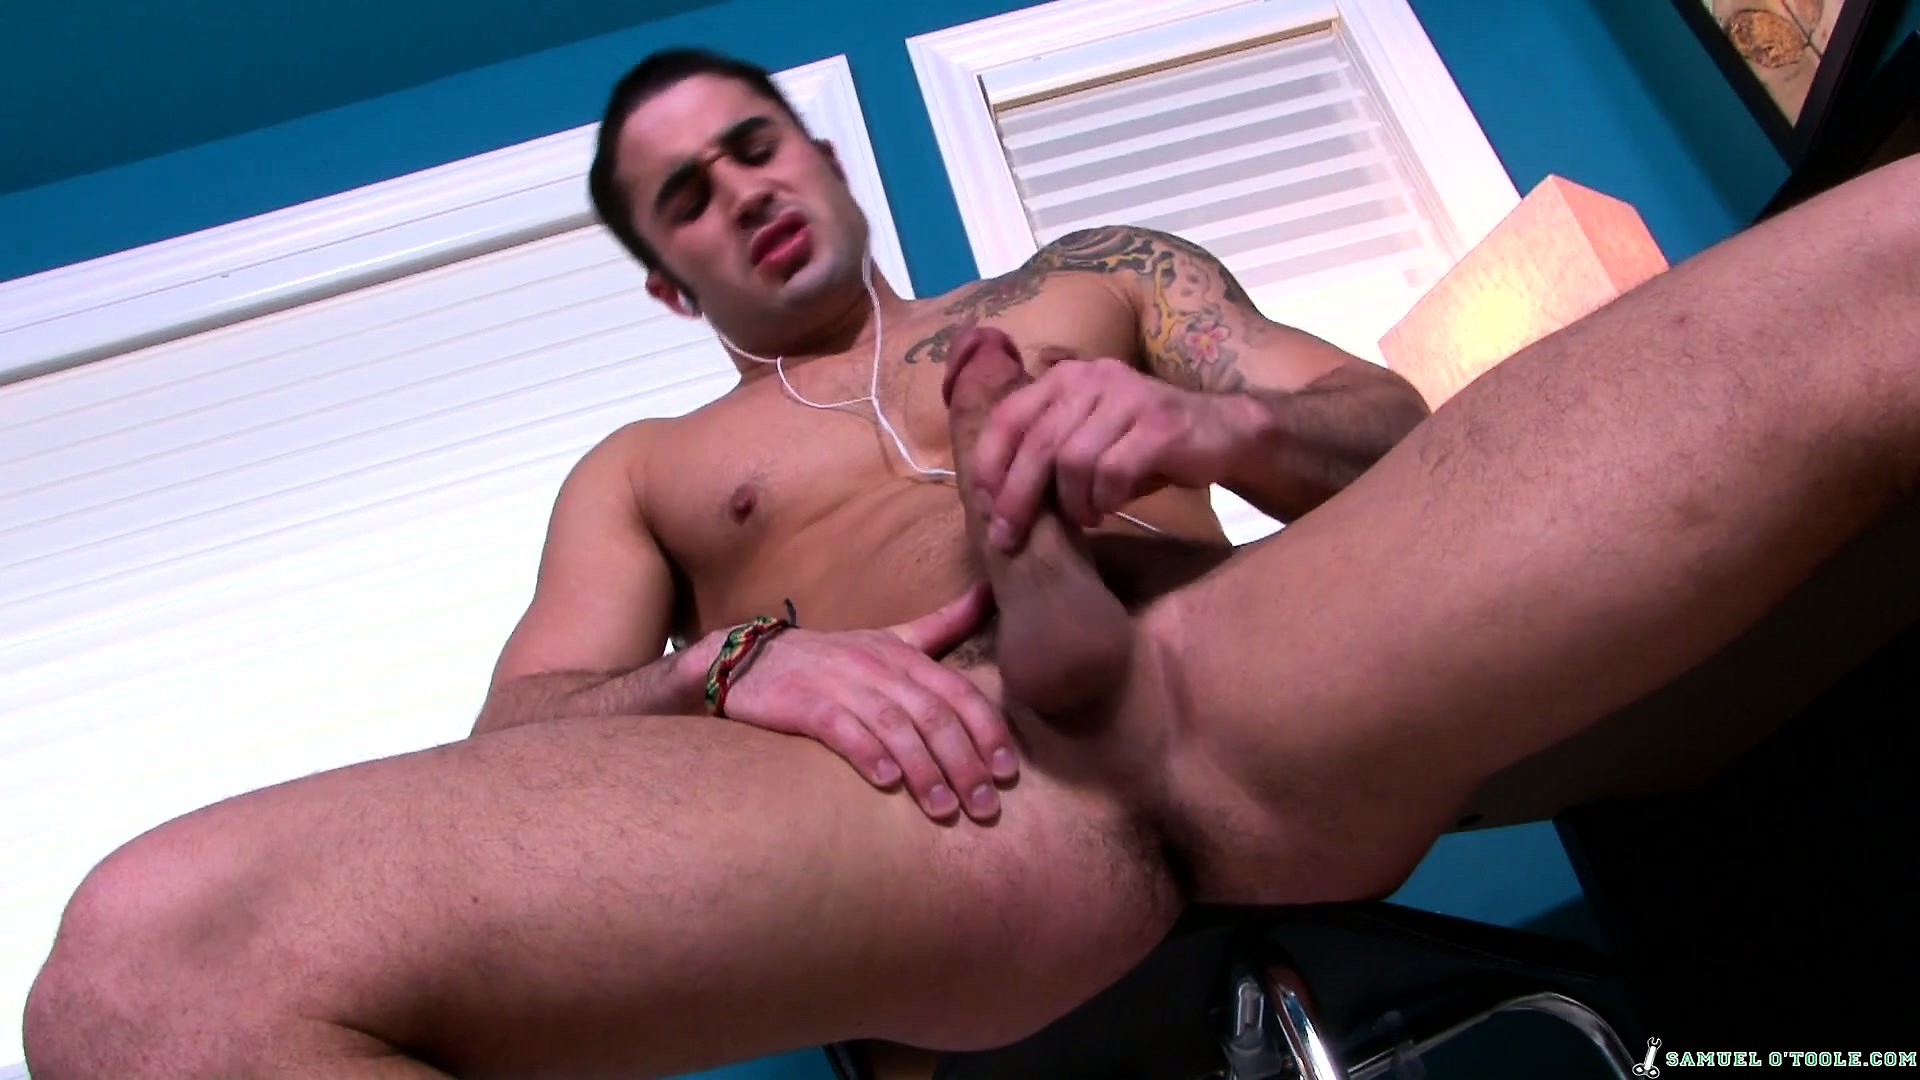 Porn Tube of Good Guy Samual Will Gladly Show You His Impressive And Tasty Manhood